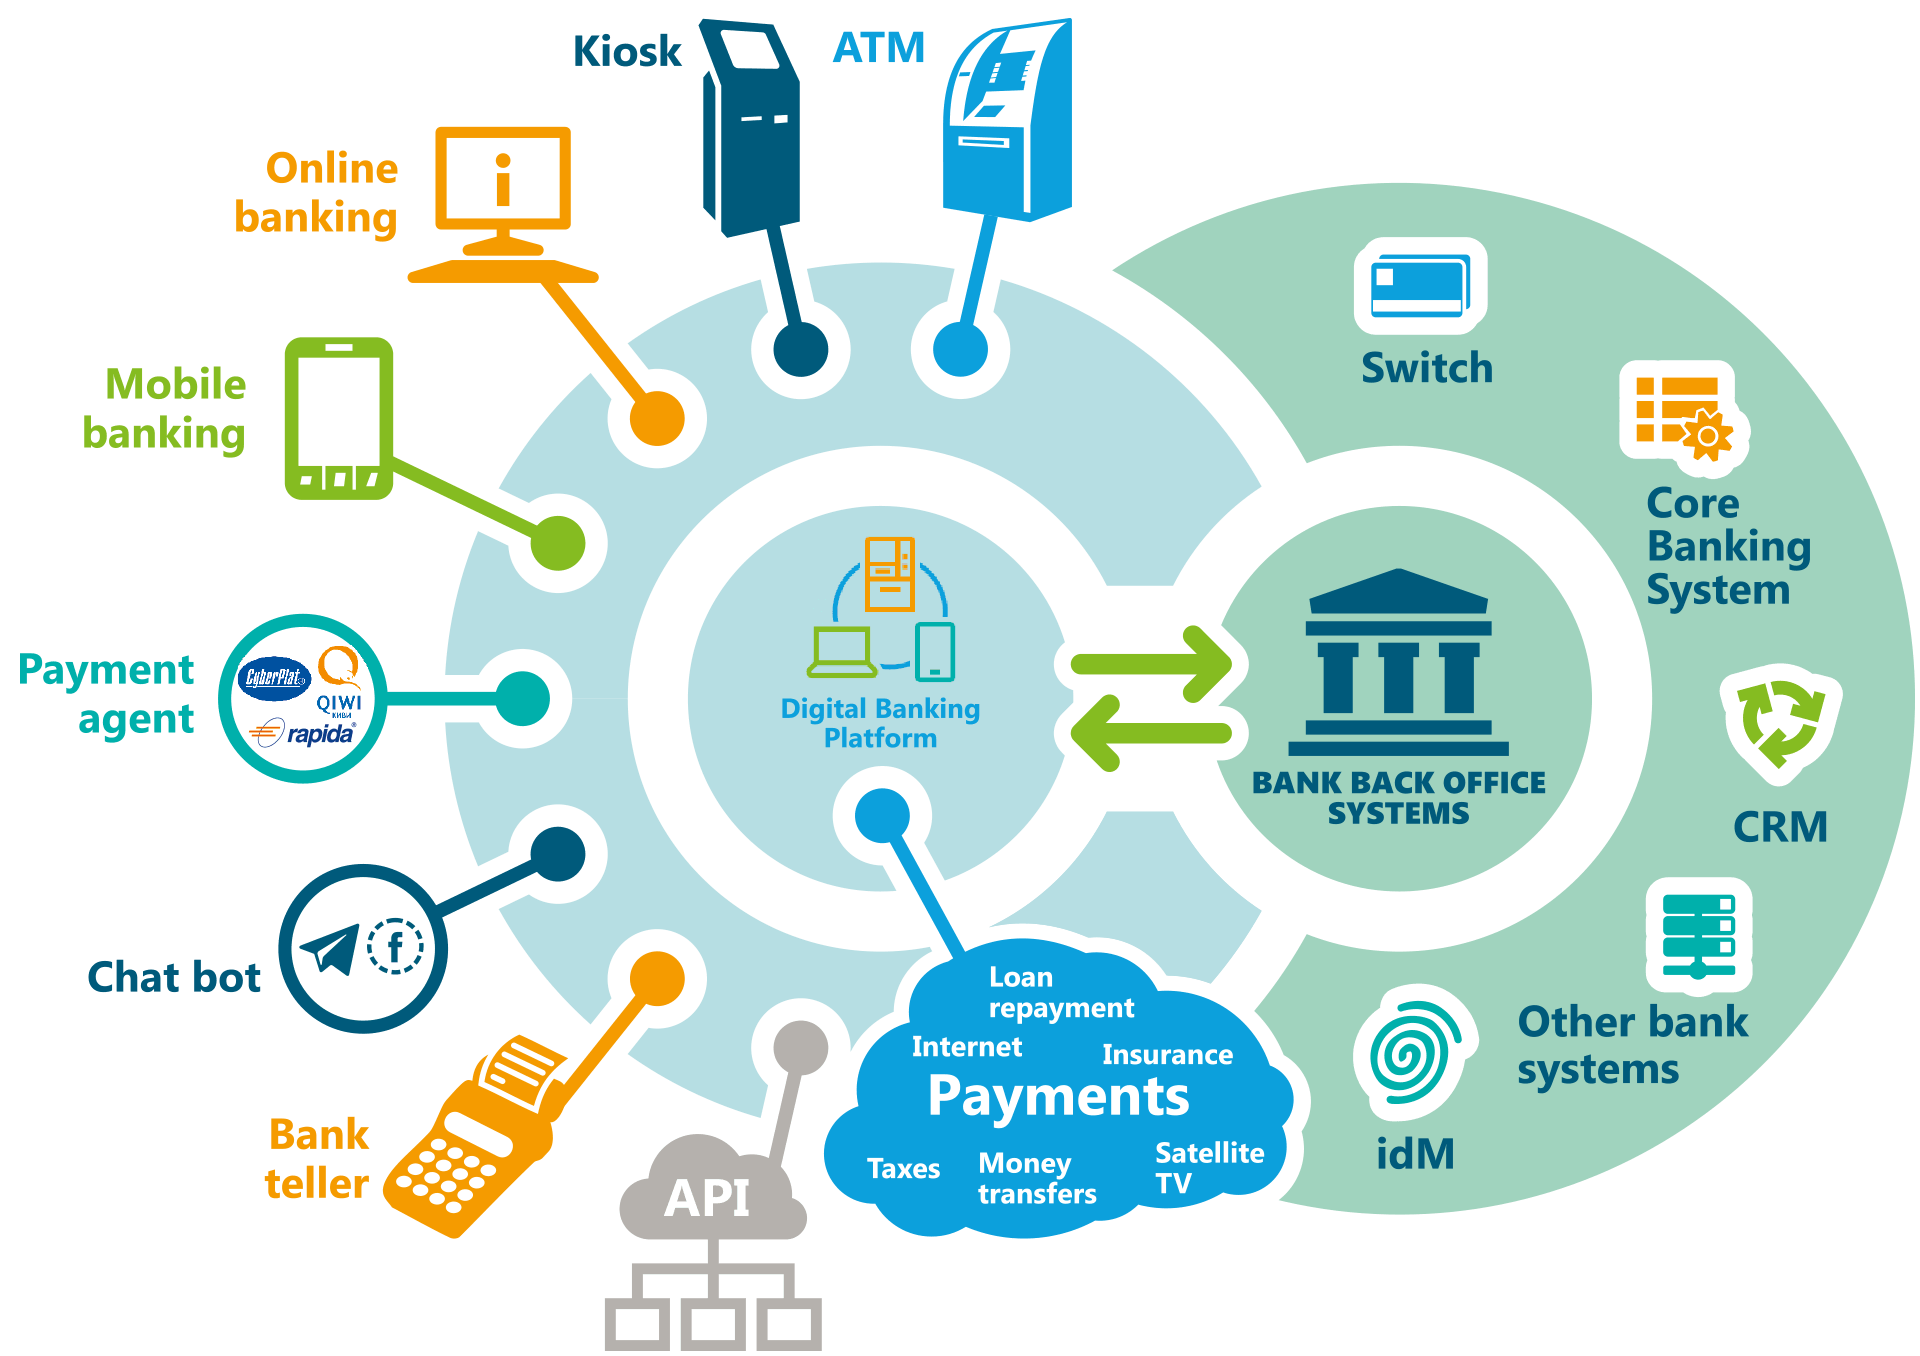 Latest Trends In Digital Banking Platform and Services Market 2019 | Top Key Players: Urban FT, Kony, Backbase, Technisys, Infosys, Digiliti Money, D3 Banking Technology, Alkami, Q2 eBanking, Finastra, SAP, Temenos, FIS Global